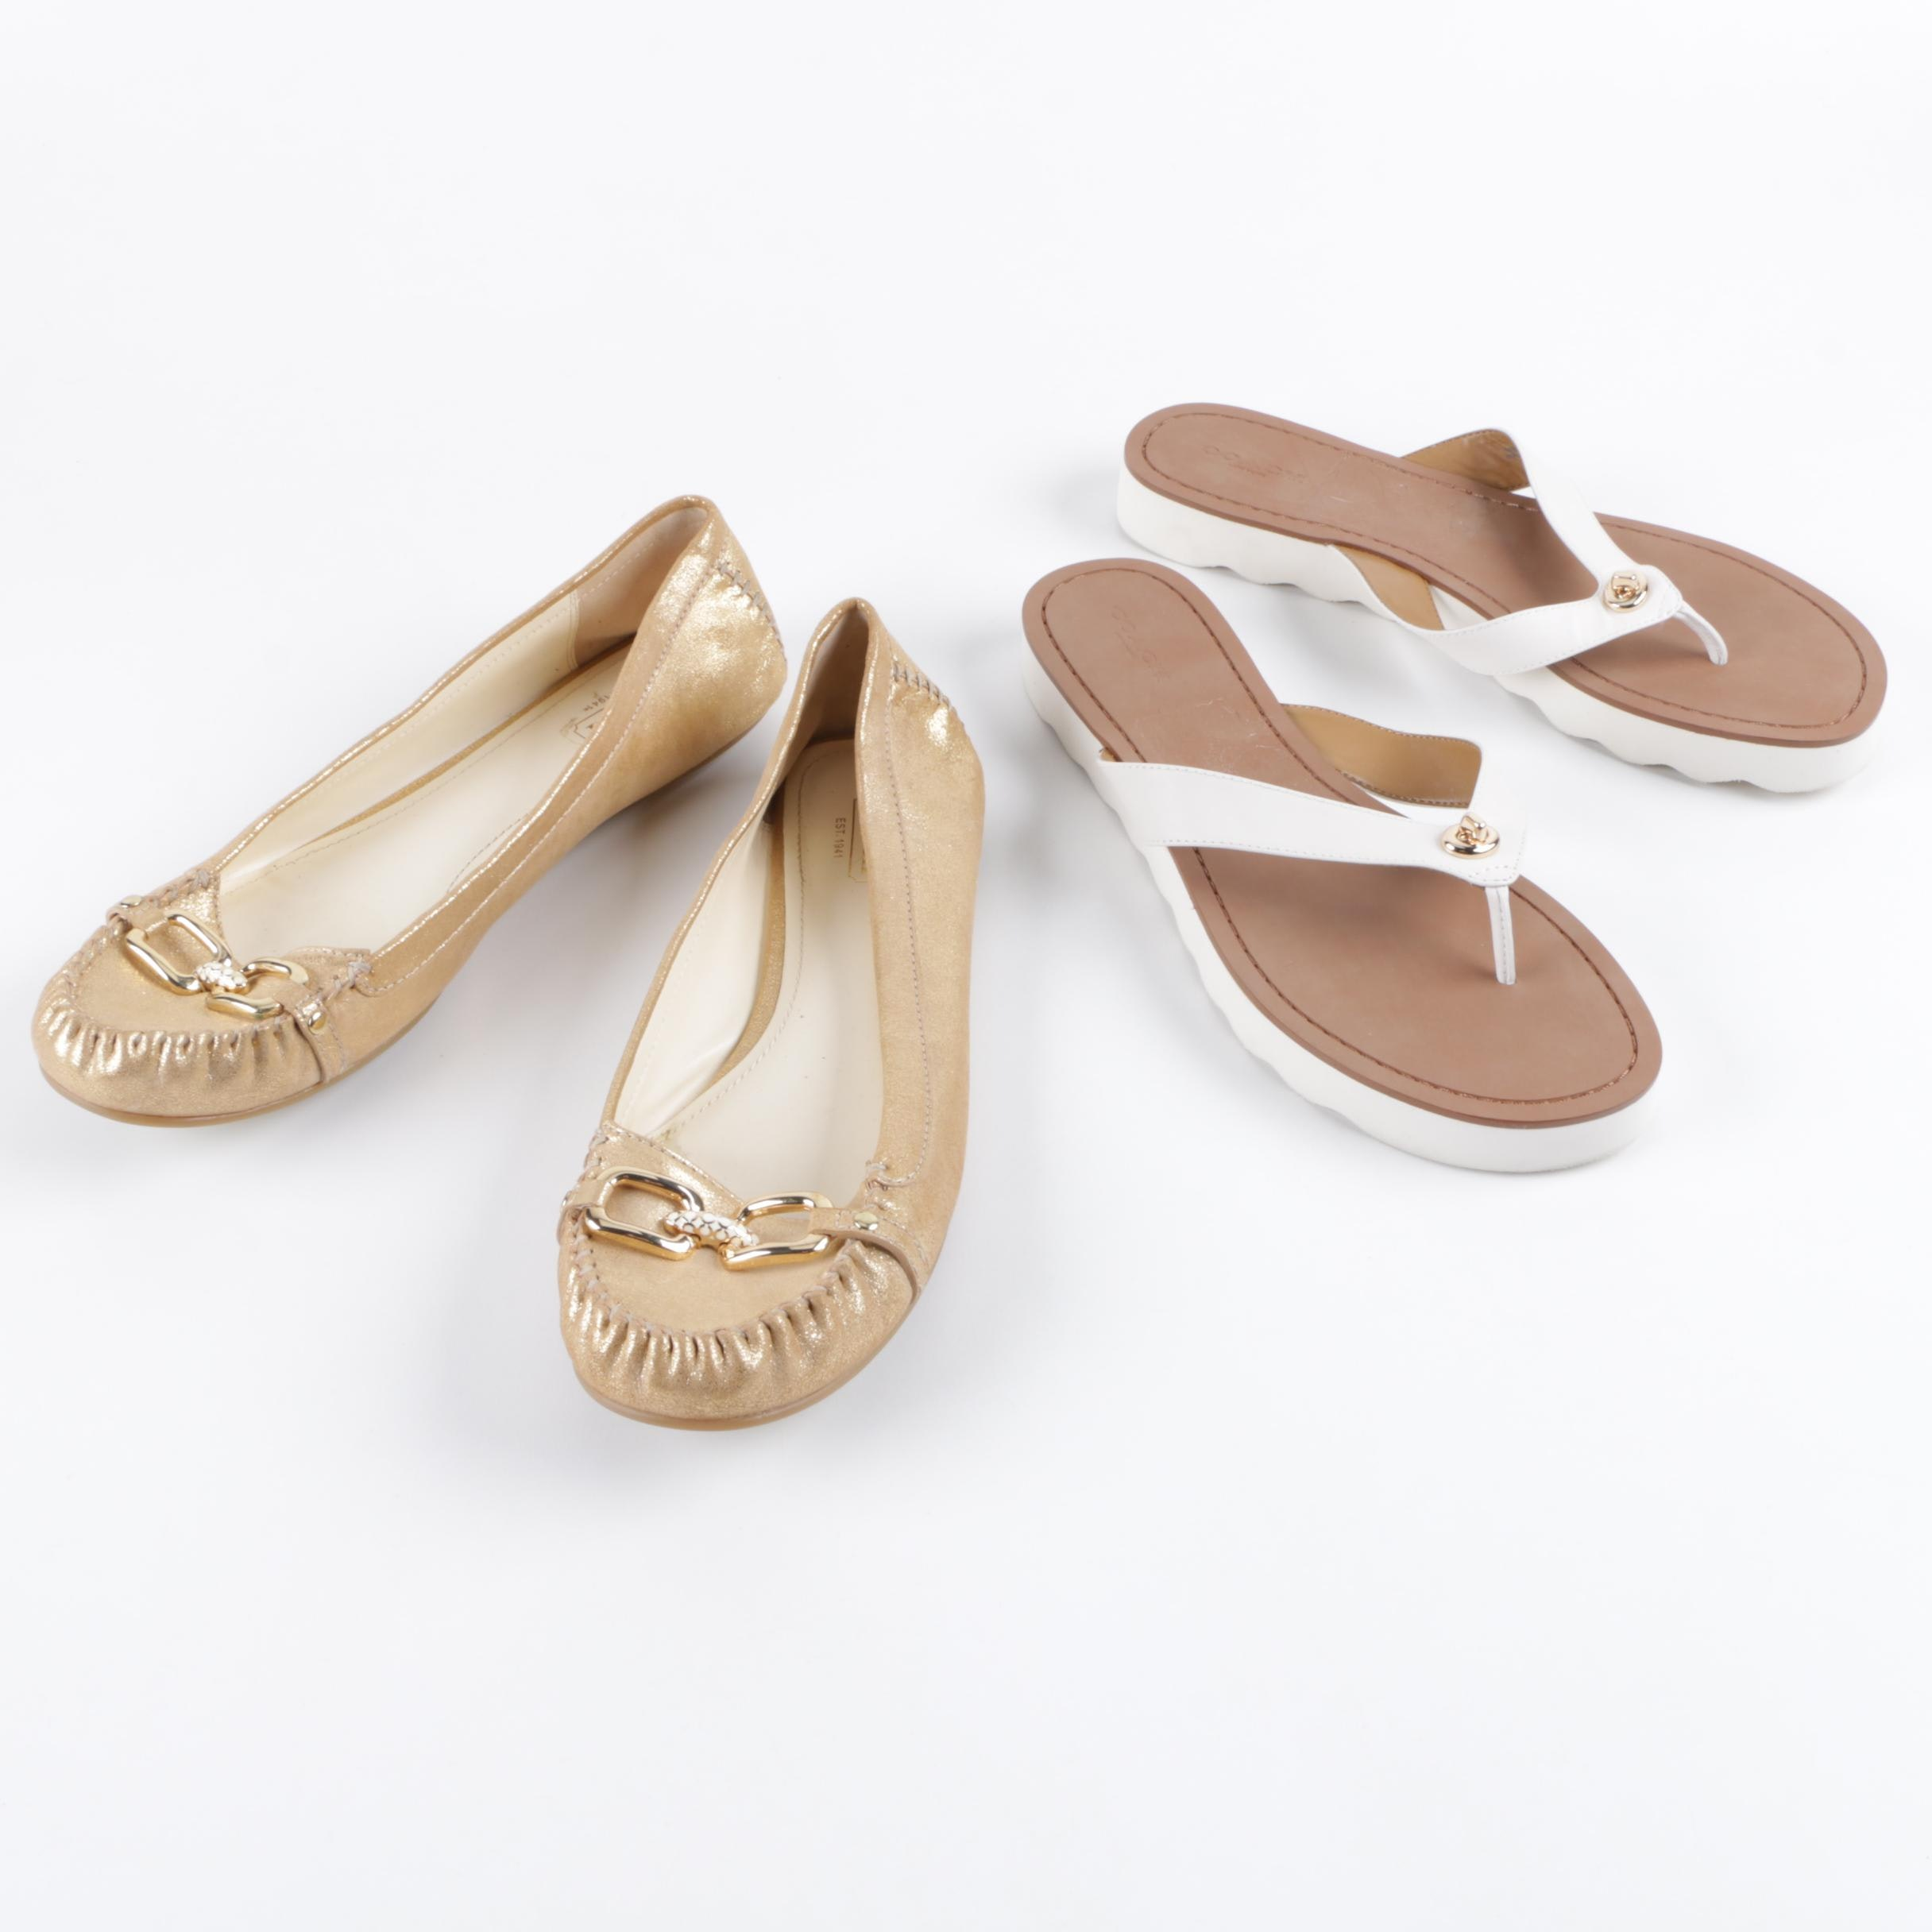 Coach Flynn Leather Loafers and Coach Shelly Leather Thong Sandals